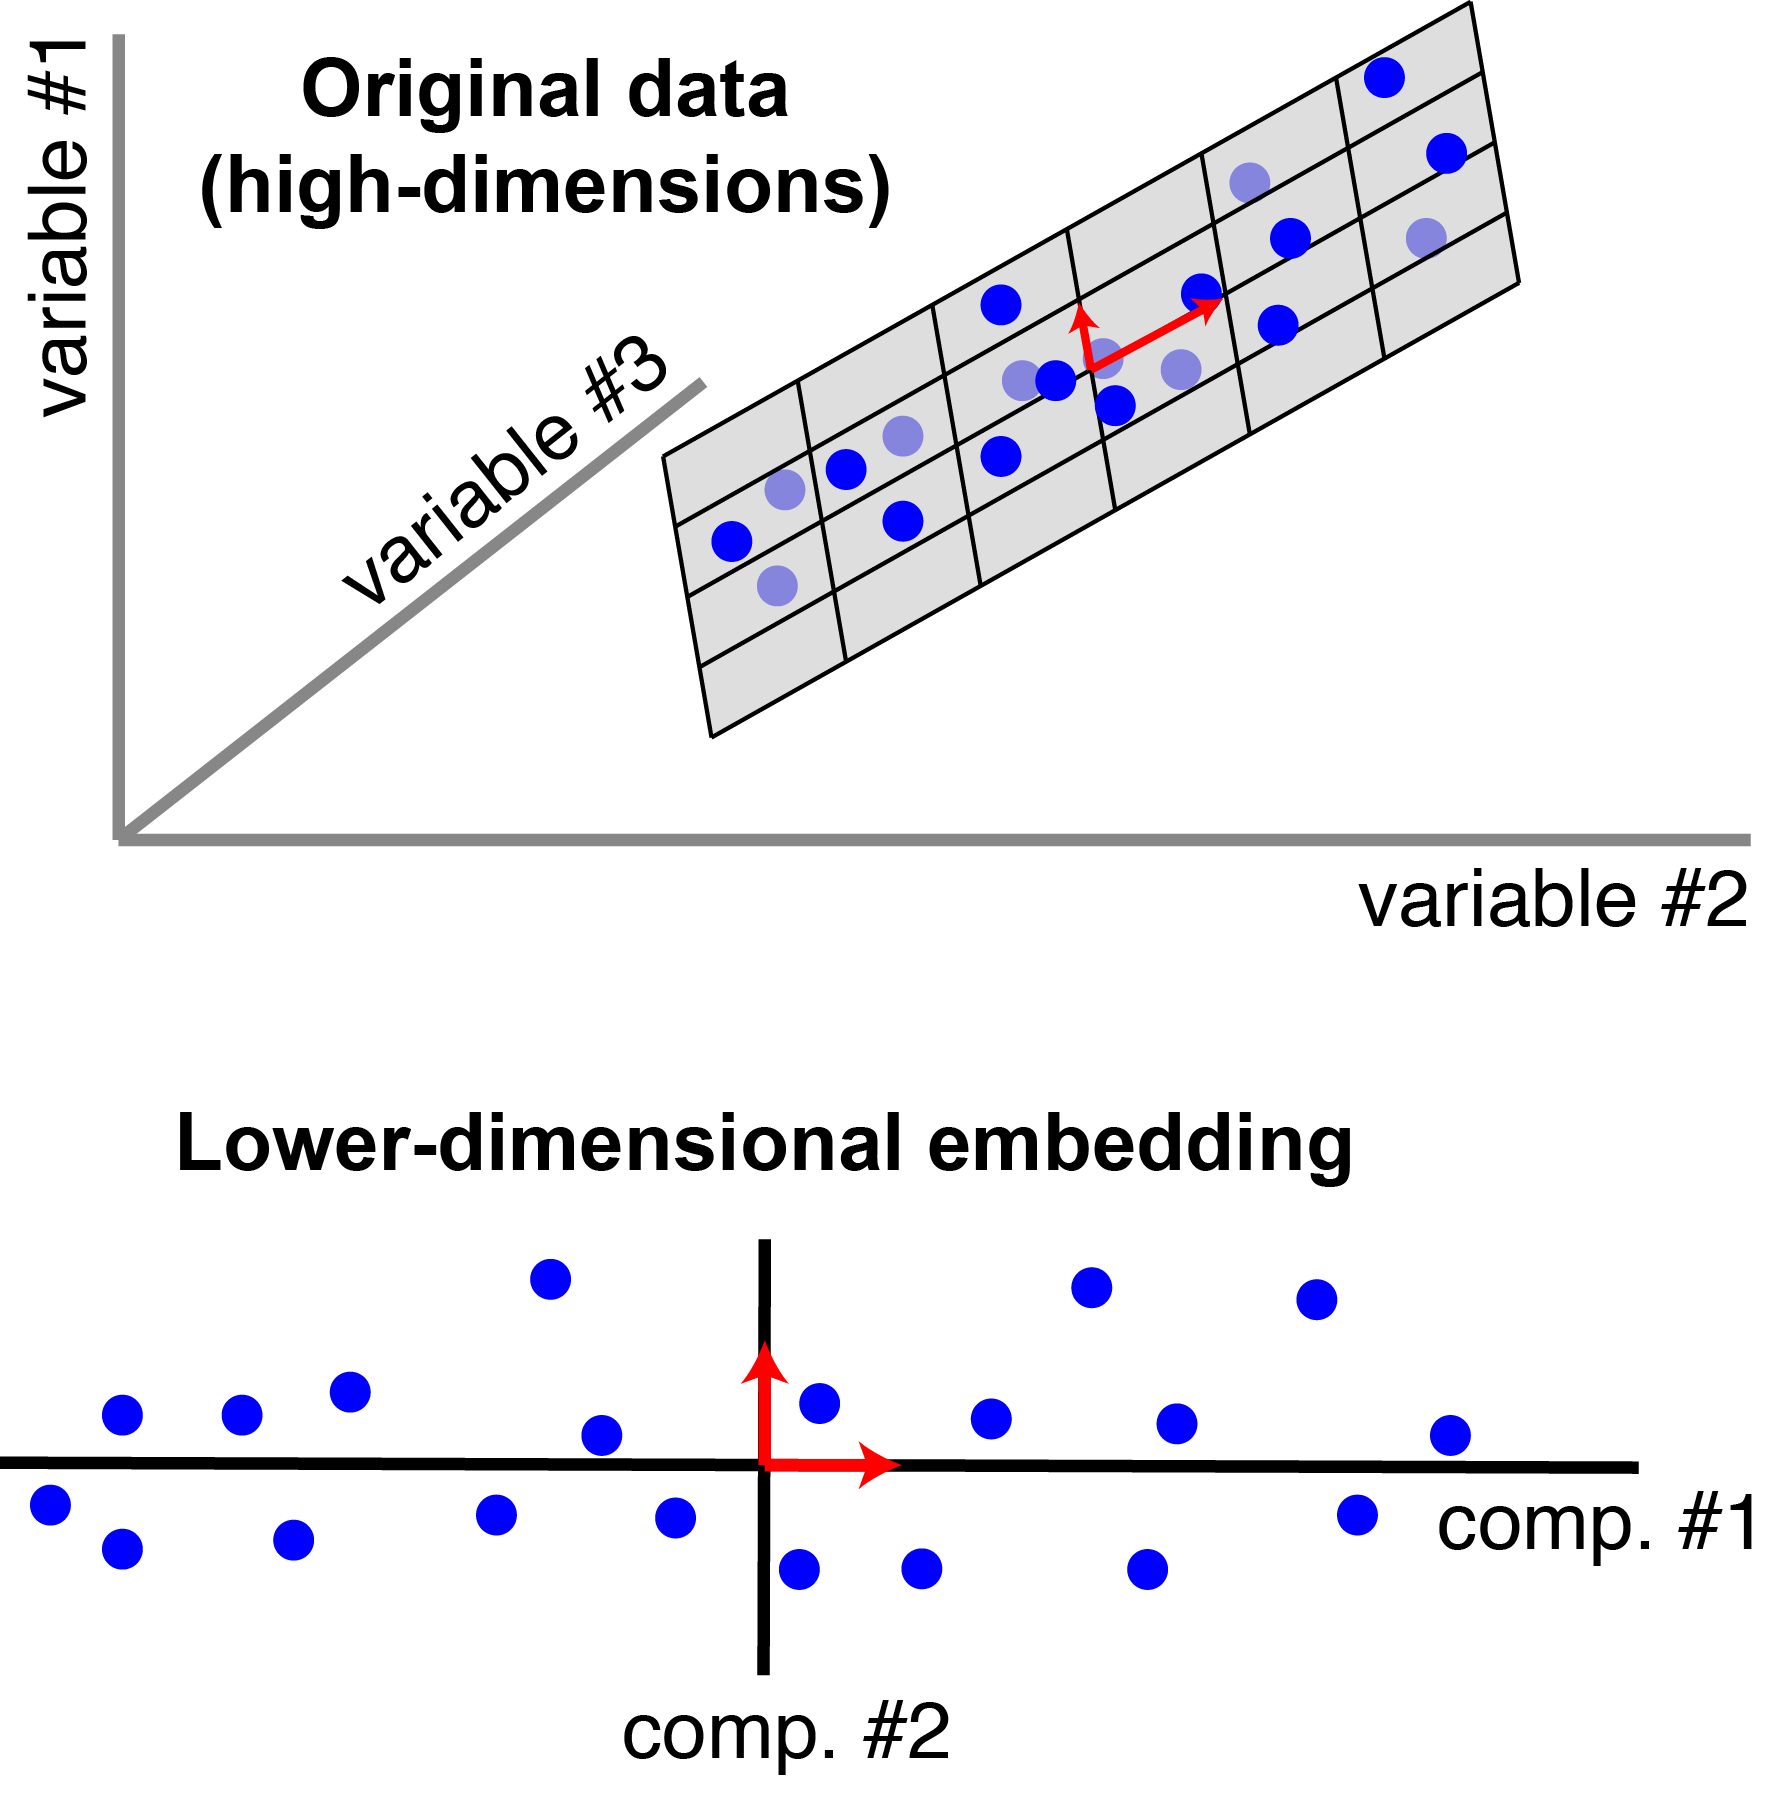 Each blue point corresponds to an observation (a row of $A$). There are $n=20$ observations, each with $p=3$ features. In this schematic, PCA reduces the dimensionality from three to $r=2$. In particular, it finds a pair of orthogonal vectors (red arrows) that define a lower-dimensional space (grey plane) which captures as much variance as possible from the original dataset.